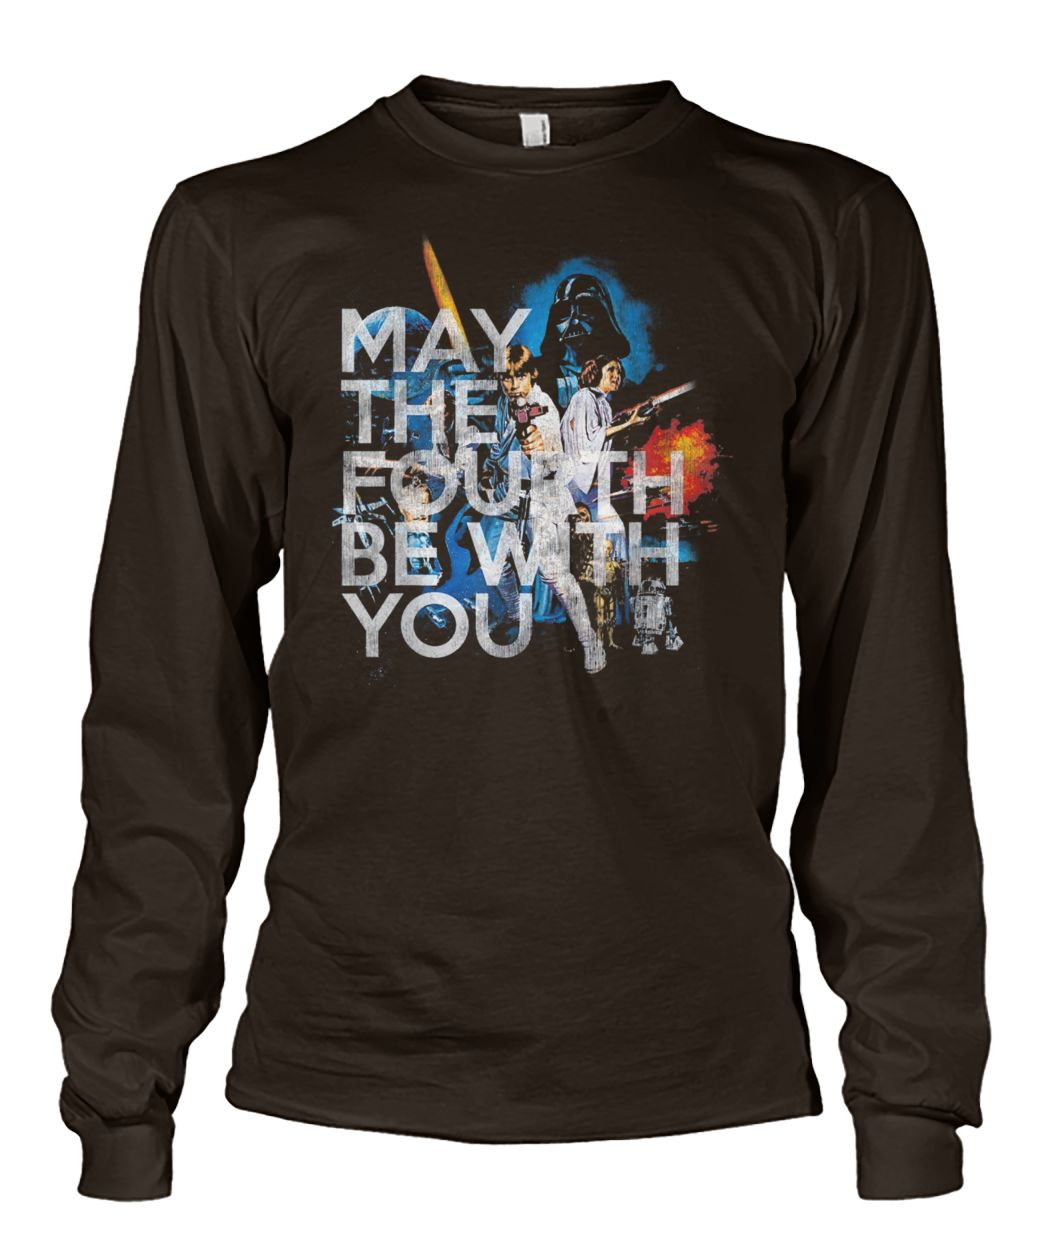 May the fourth be with you star wars day unisex long sleeve